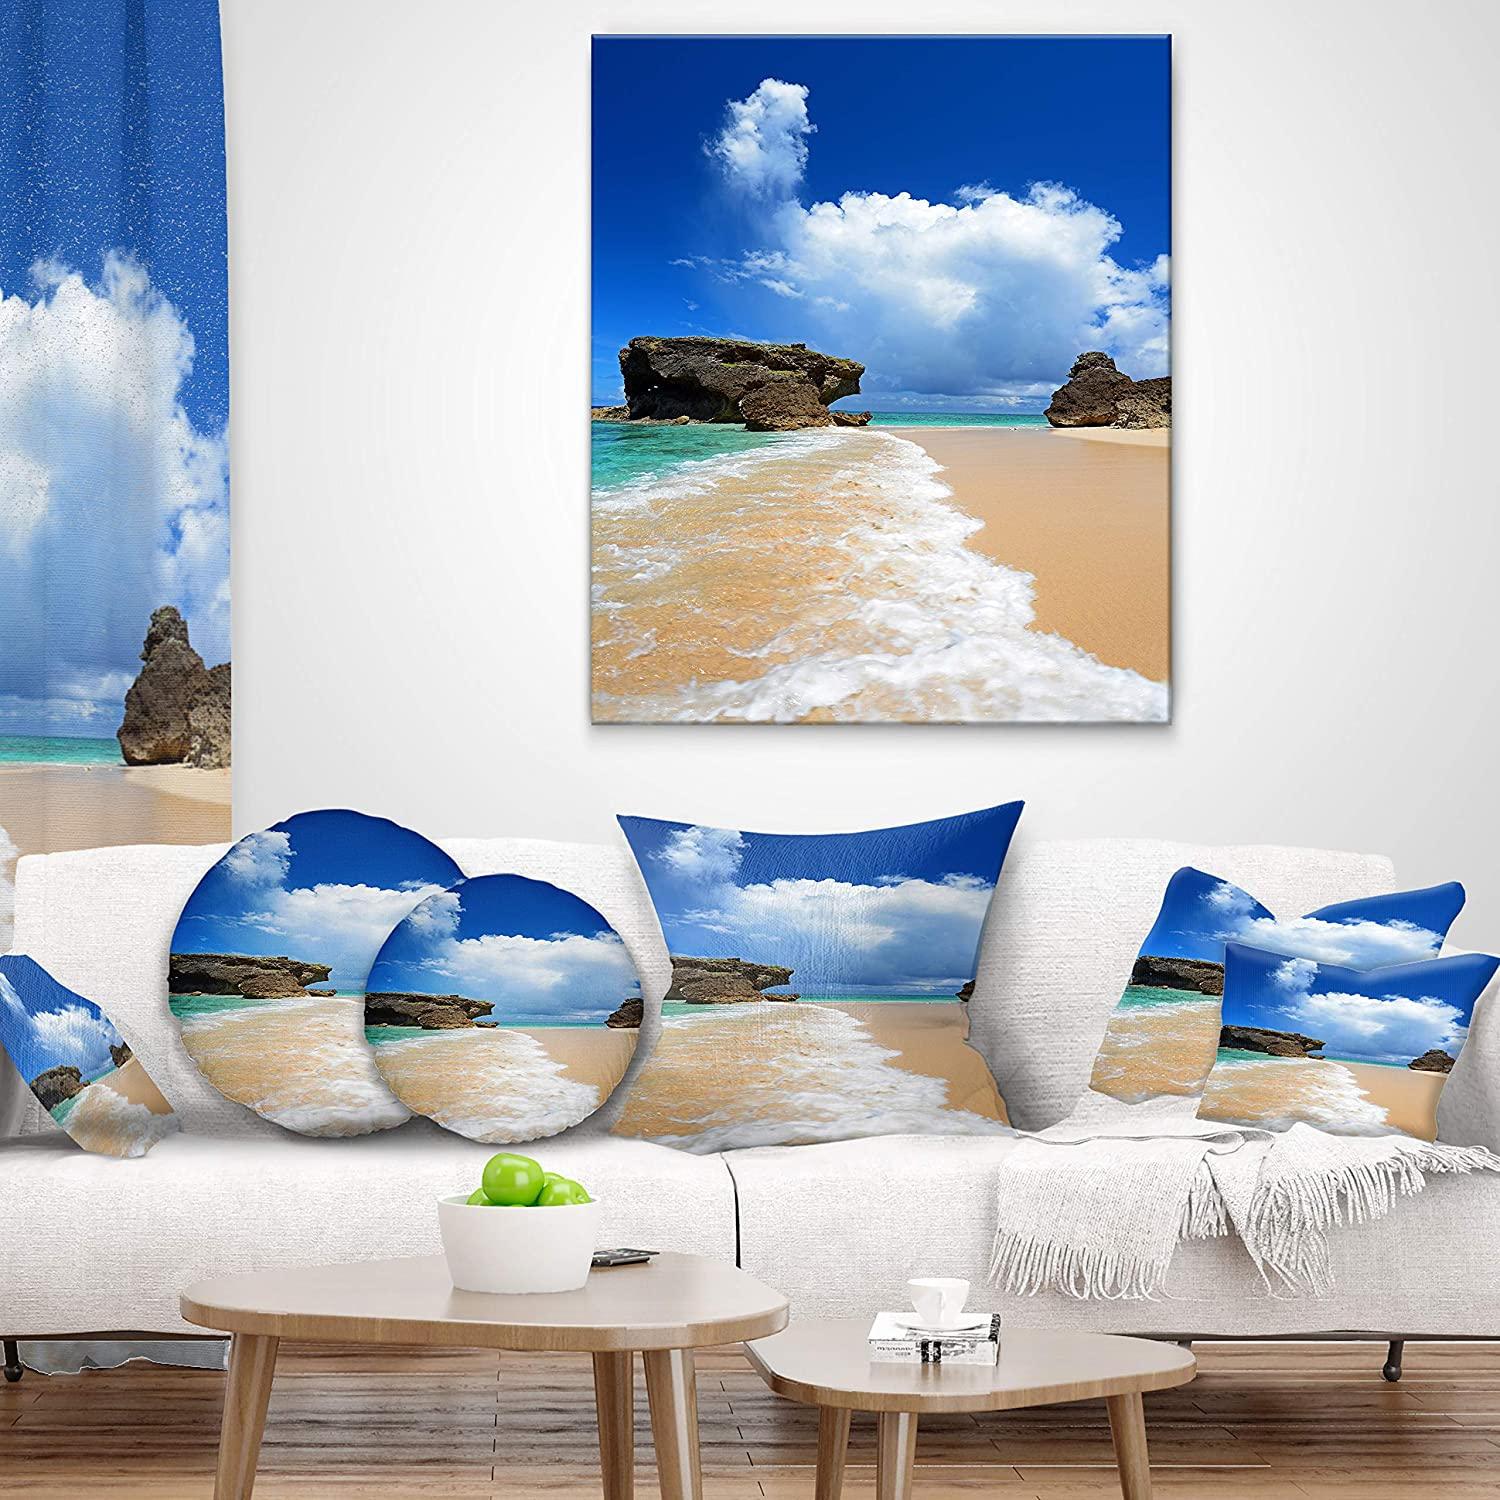 in x 20 in Sofa Throw Pillow 12 in Designart CU8942-12-20 Emerald Green of Okinawa Beach Photography Lumbar Cushion Cover for Living Room